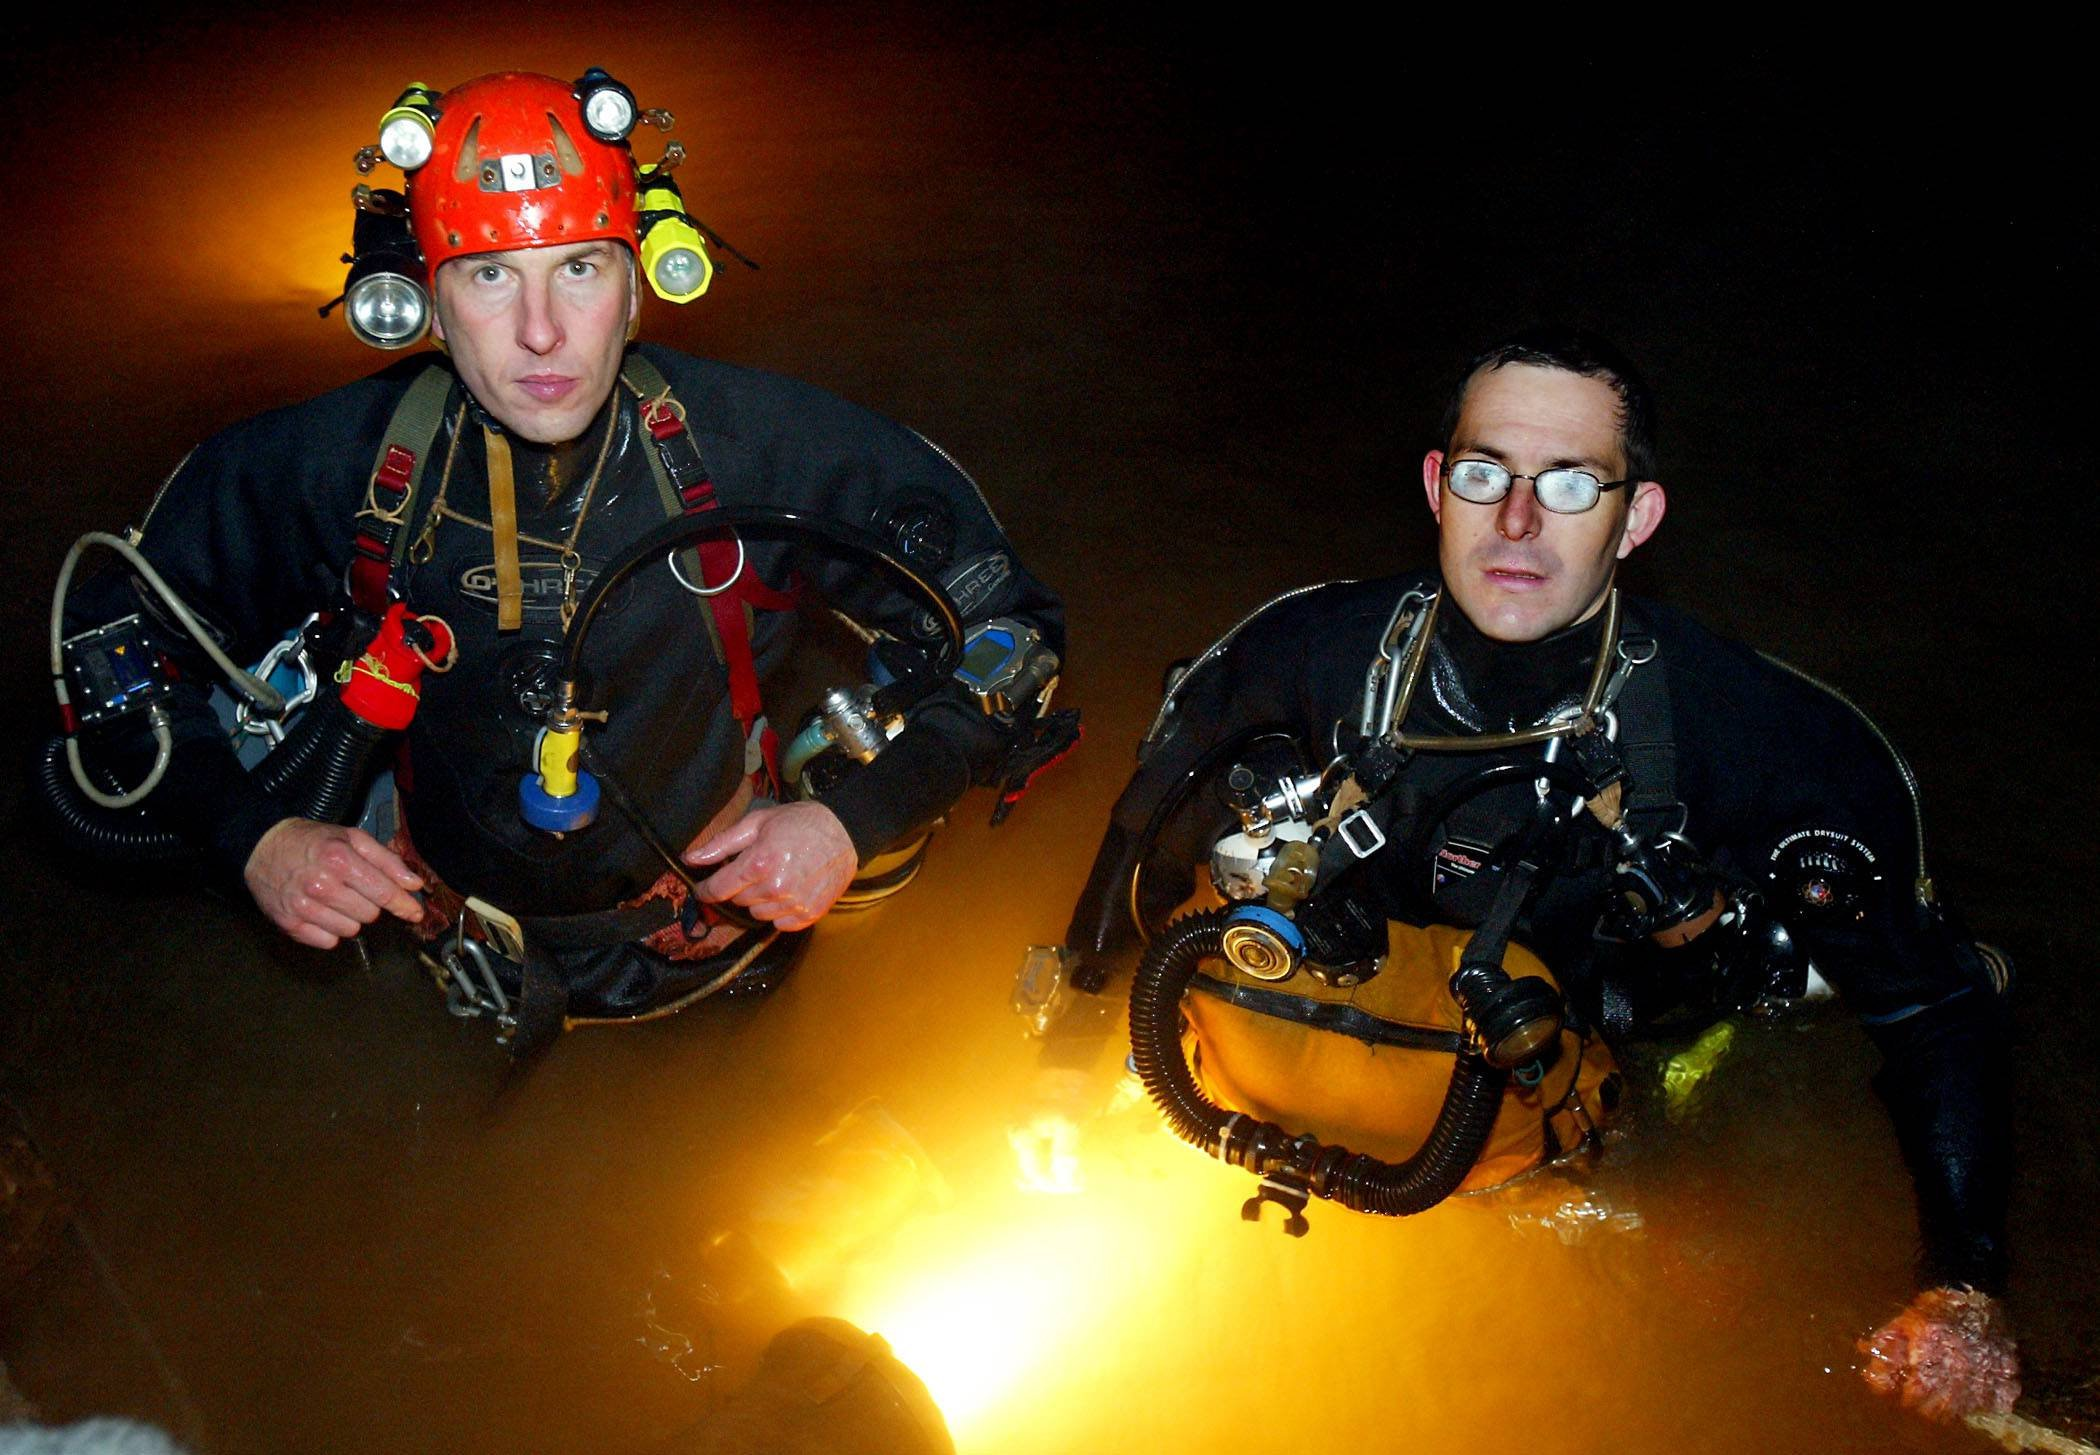 British cave diver who rescued trapped Thai footballers says he is not a hero